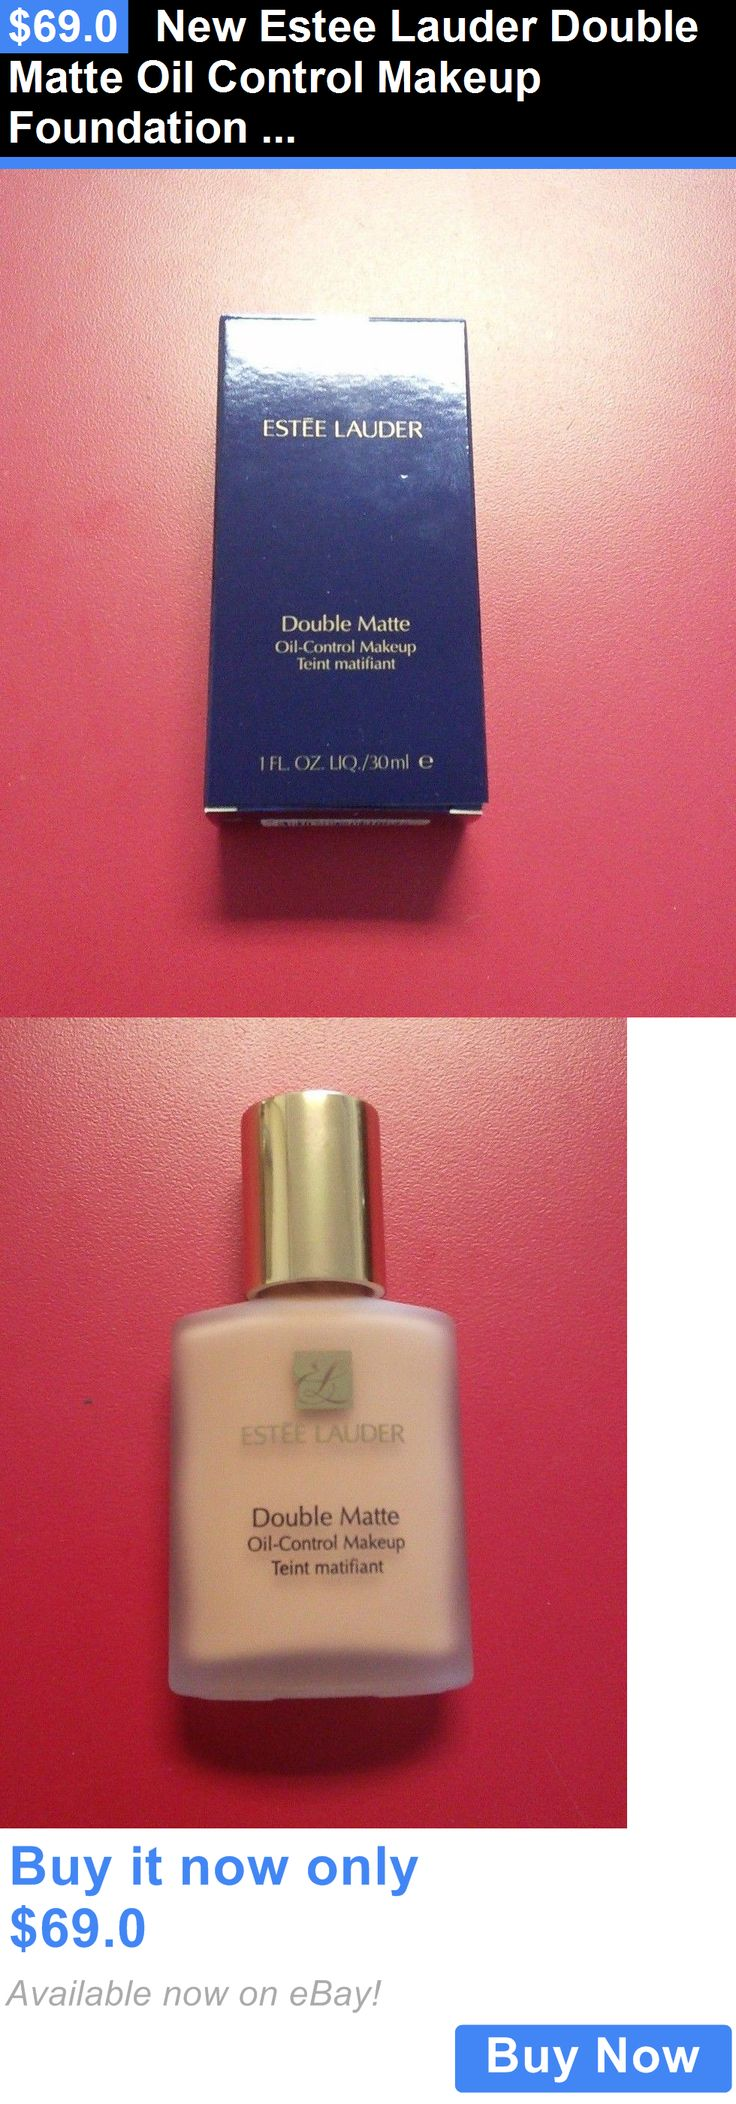 Beauty Makeup: New Estee Lauder Double Matte Oil Control Makeup Foundation Full Choose Shade BUY IT NOW ONLY: $69.0